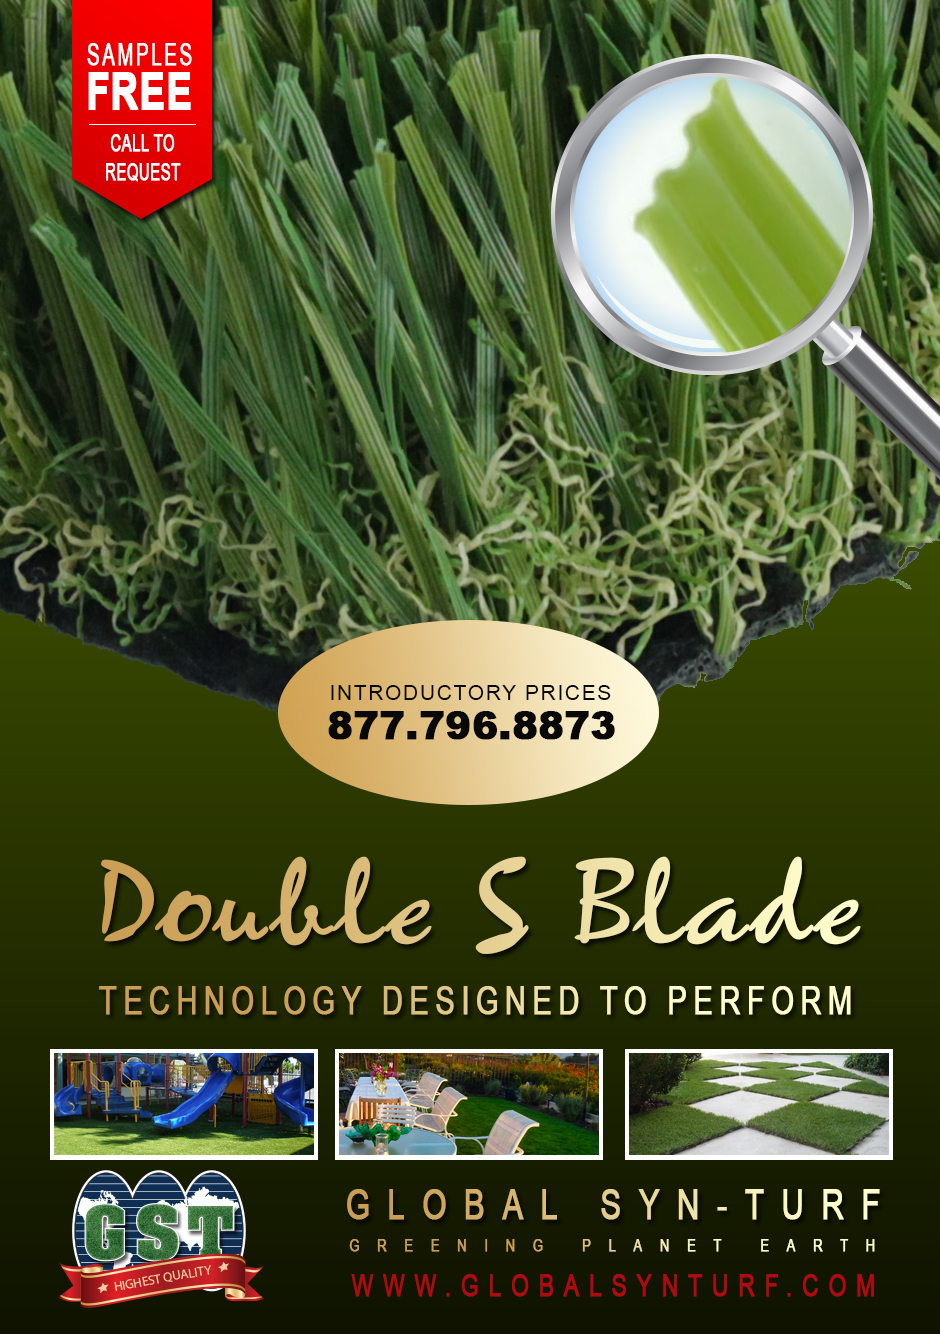 syntheticgrass Global Syn-Turf Launches Premium Double S Blade Artificial Grass Technology